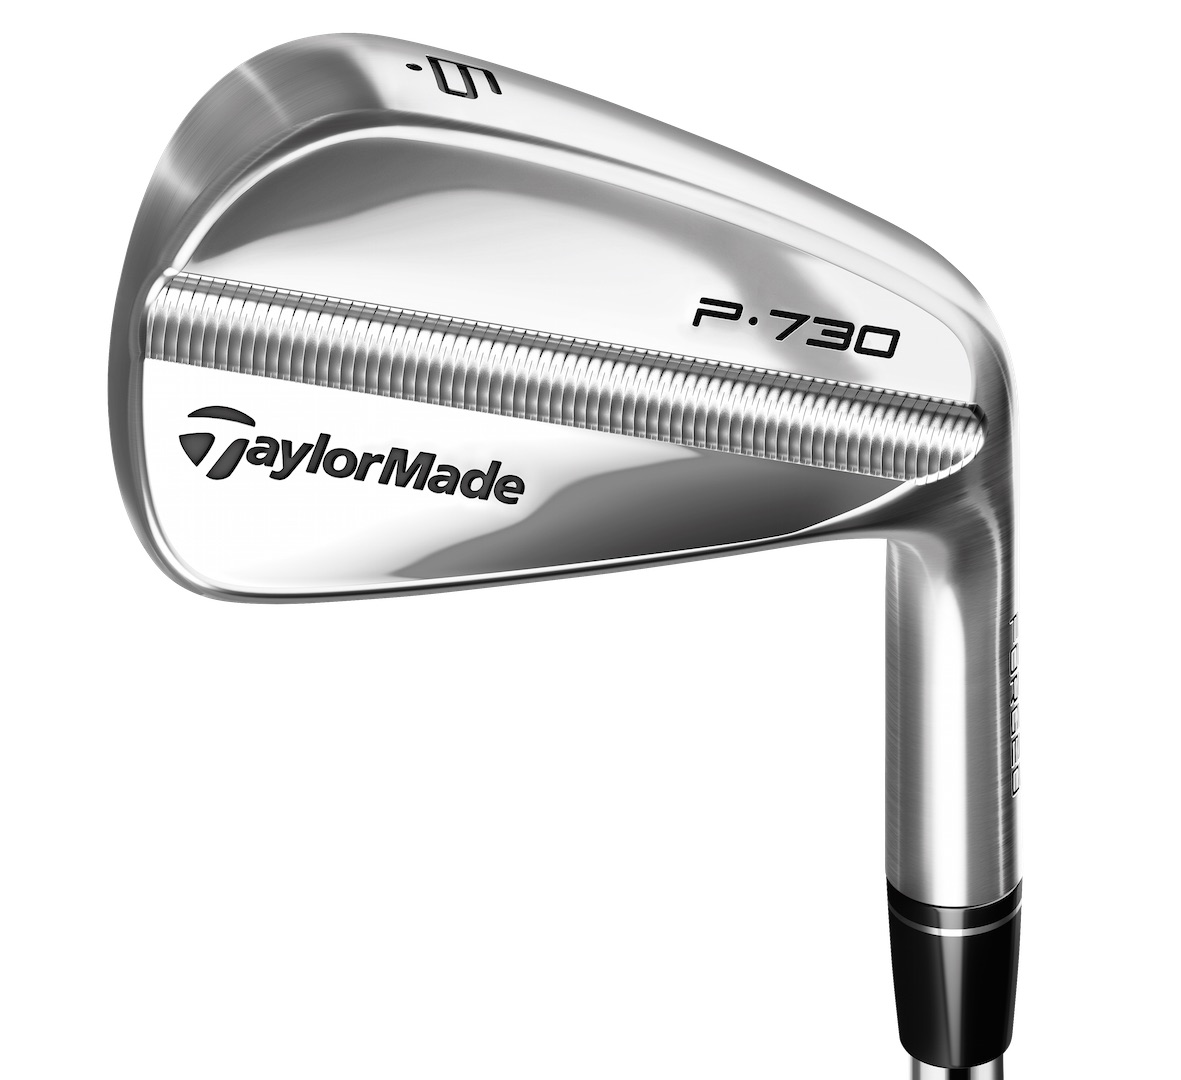 The TaylorMade P730 Irons